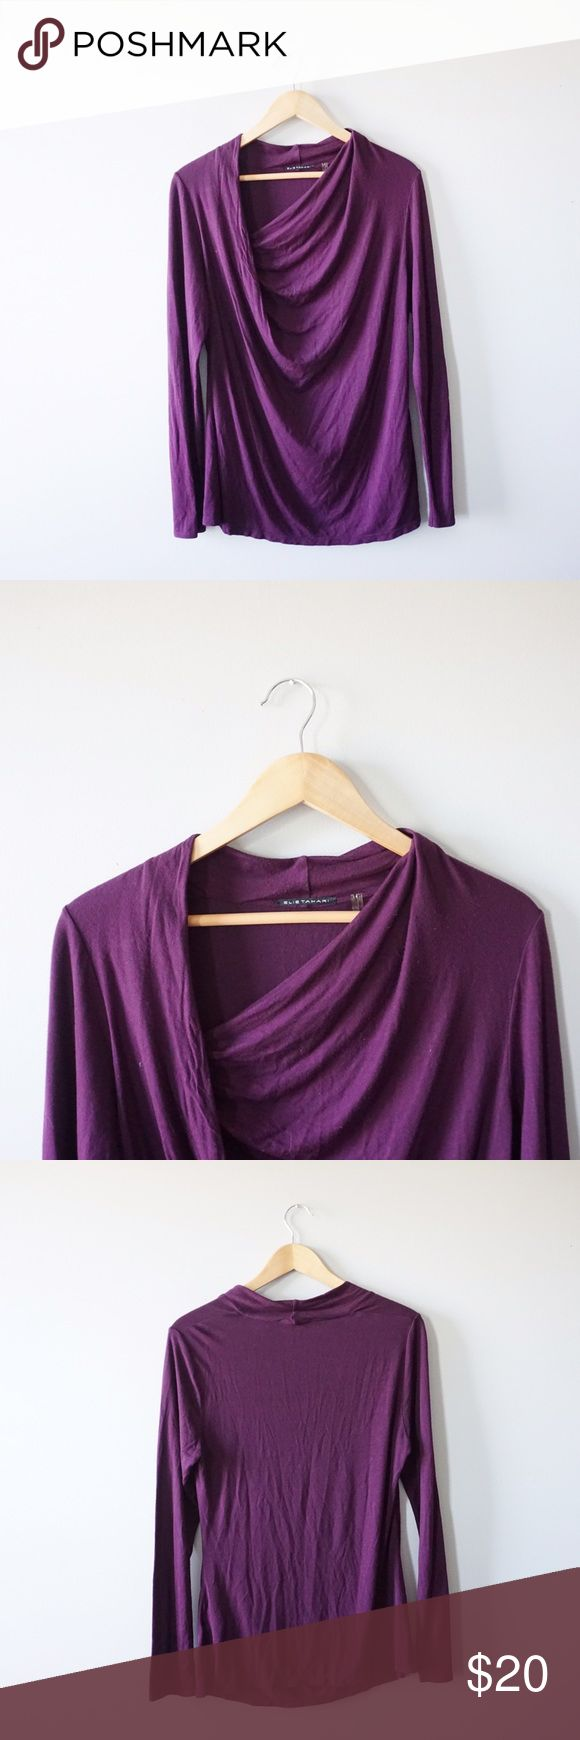 Elie Tahari Soft Draped Blouse Ellie Tahari purple draped blouse size large. Very soft. Long sleeves. Minor pilling. No stains rips or tears. Elie Tahari Tops Blouses